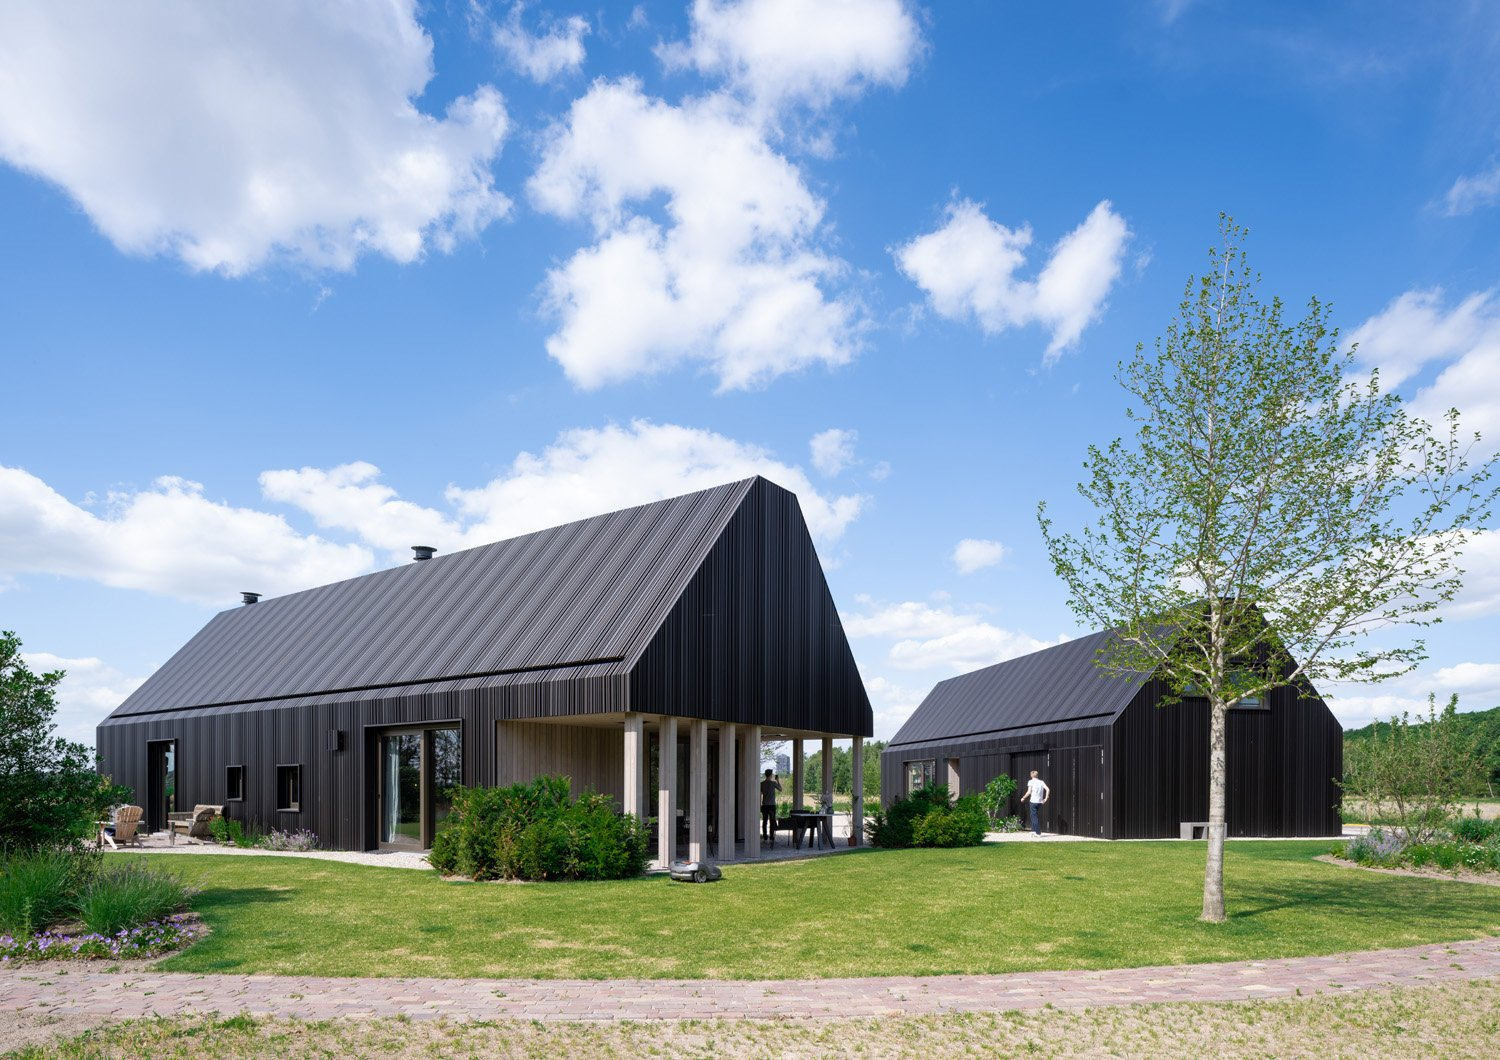 Of the two barns, one is furnished as a living room, kitchen with dining area and large veranda on the south-west side, with a workspace and playroom on the first floor. Ossip Architectuurfotografie